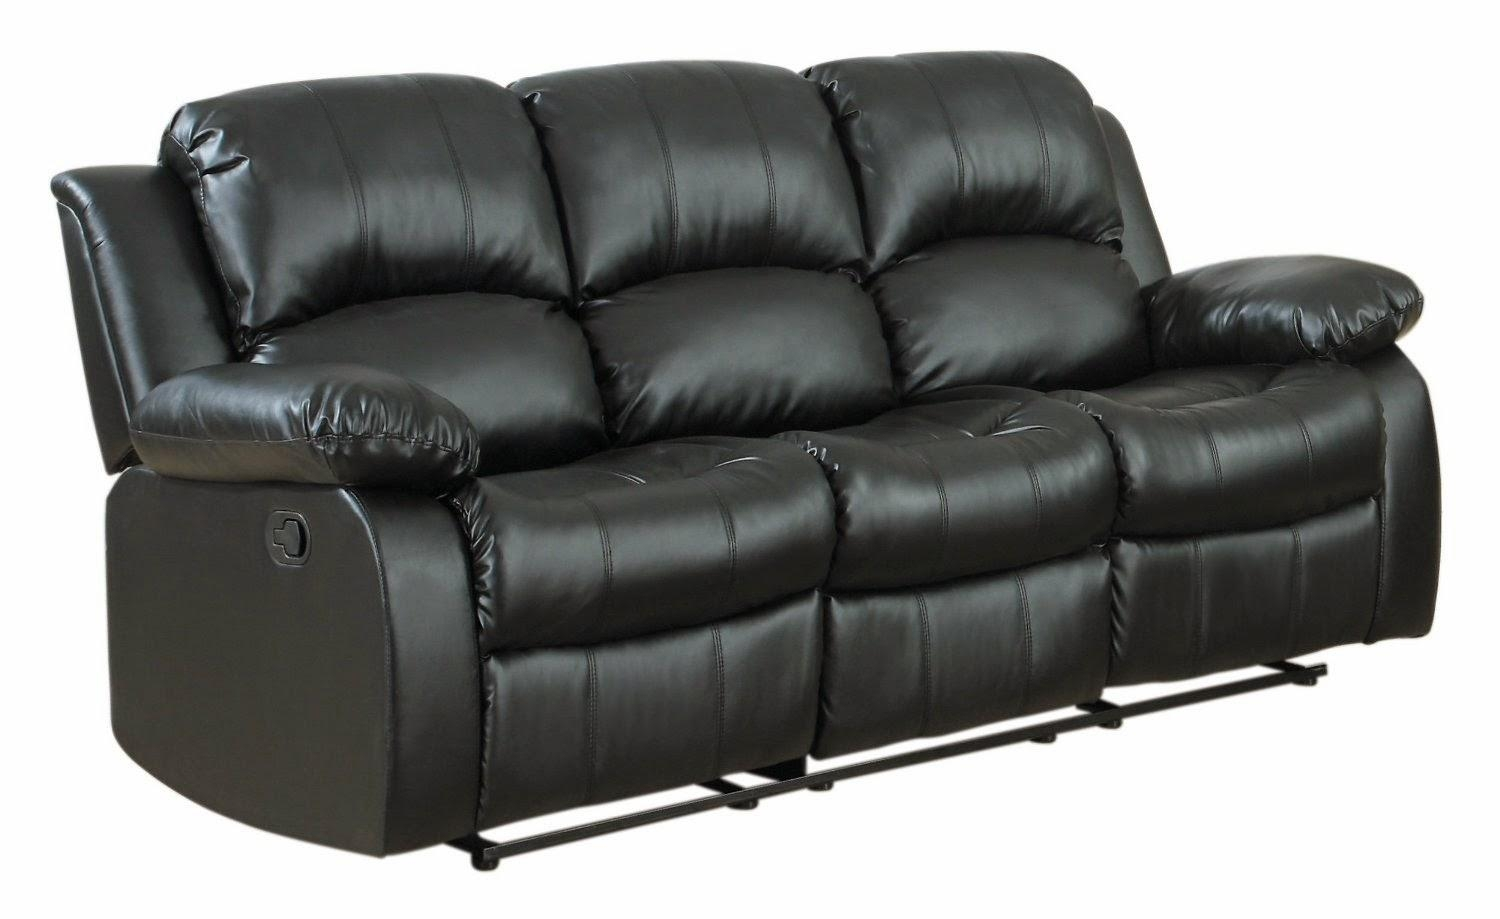 Costco Recliner Sofa Olsonware Sofa (Image 3 of 20)